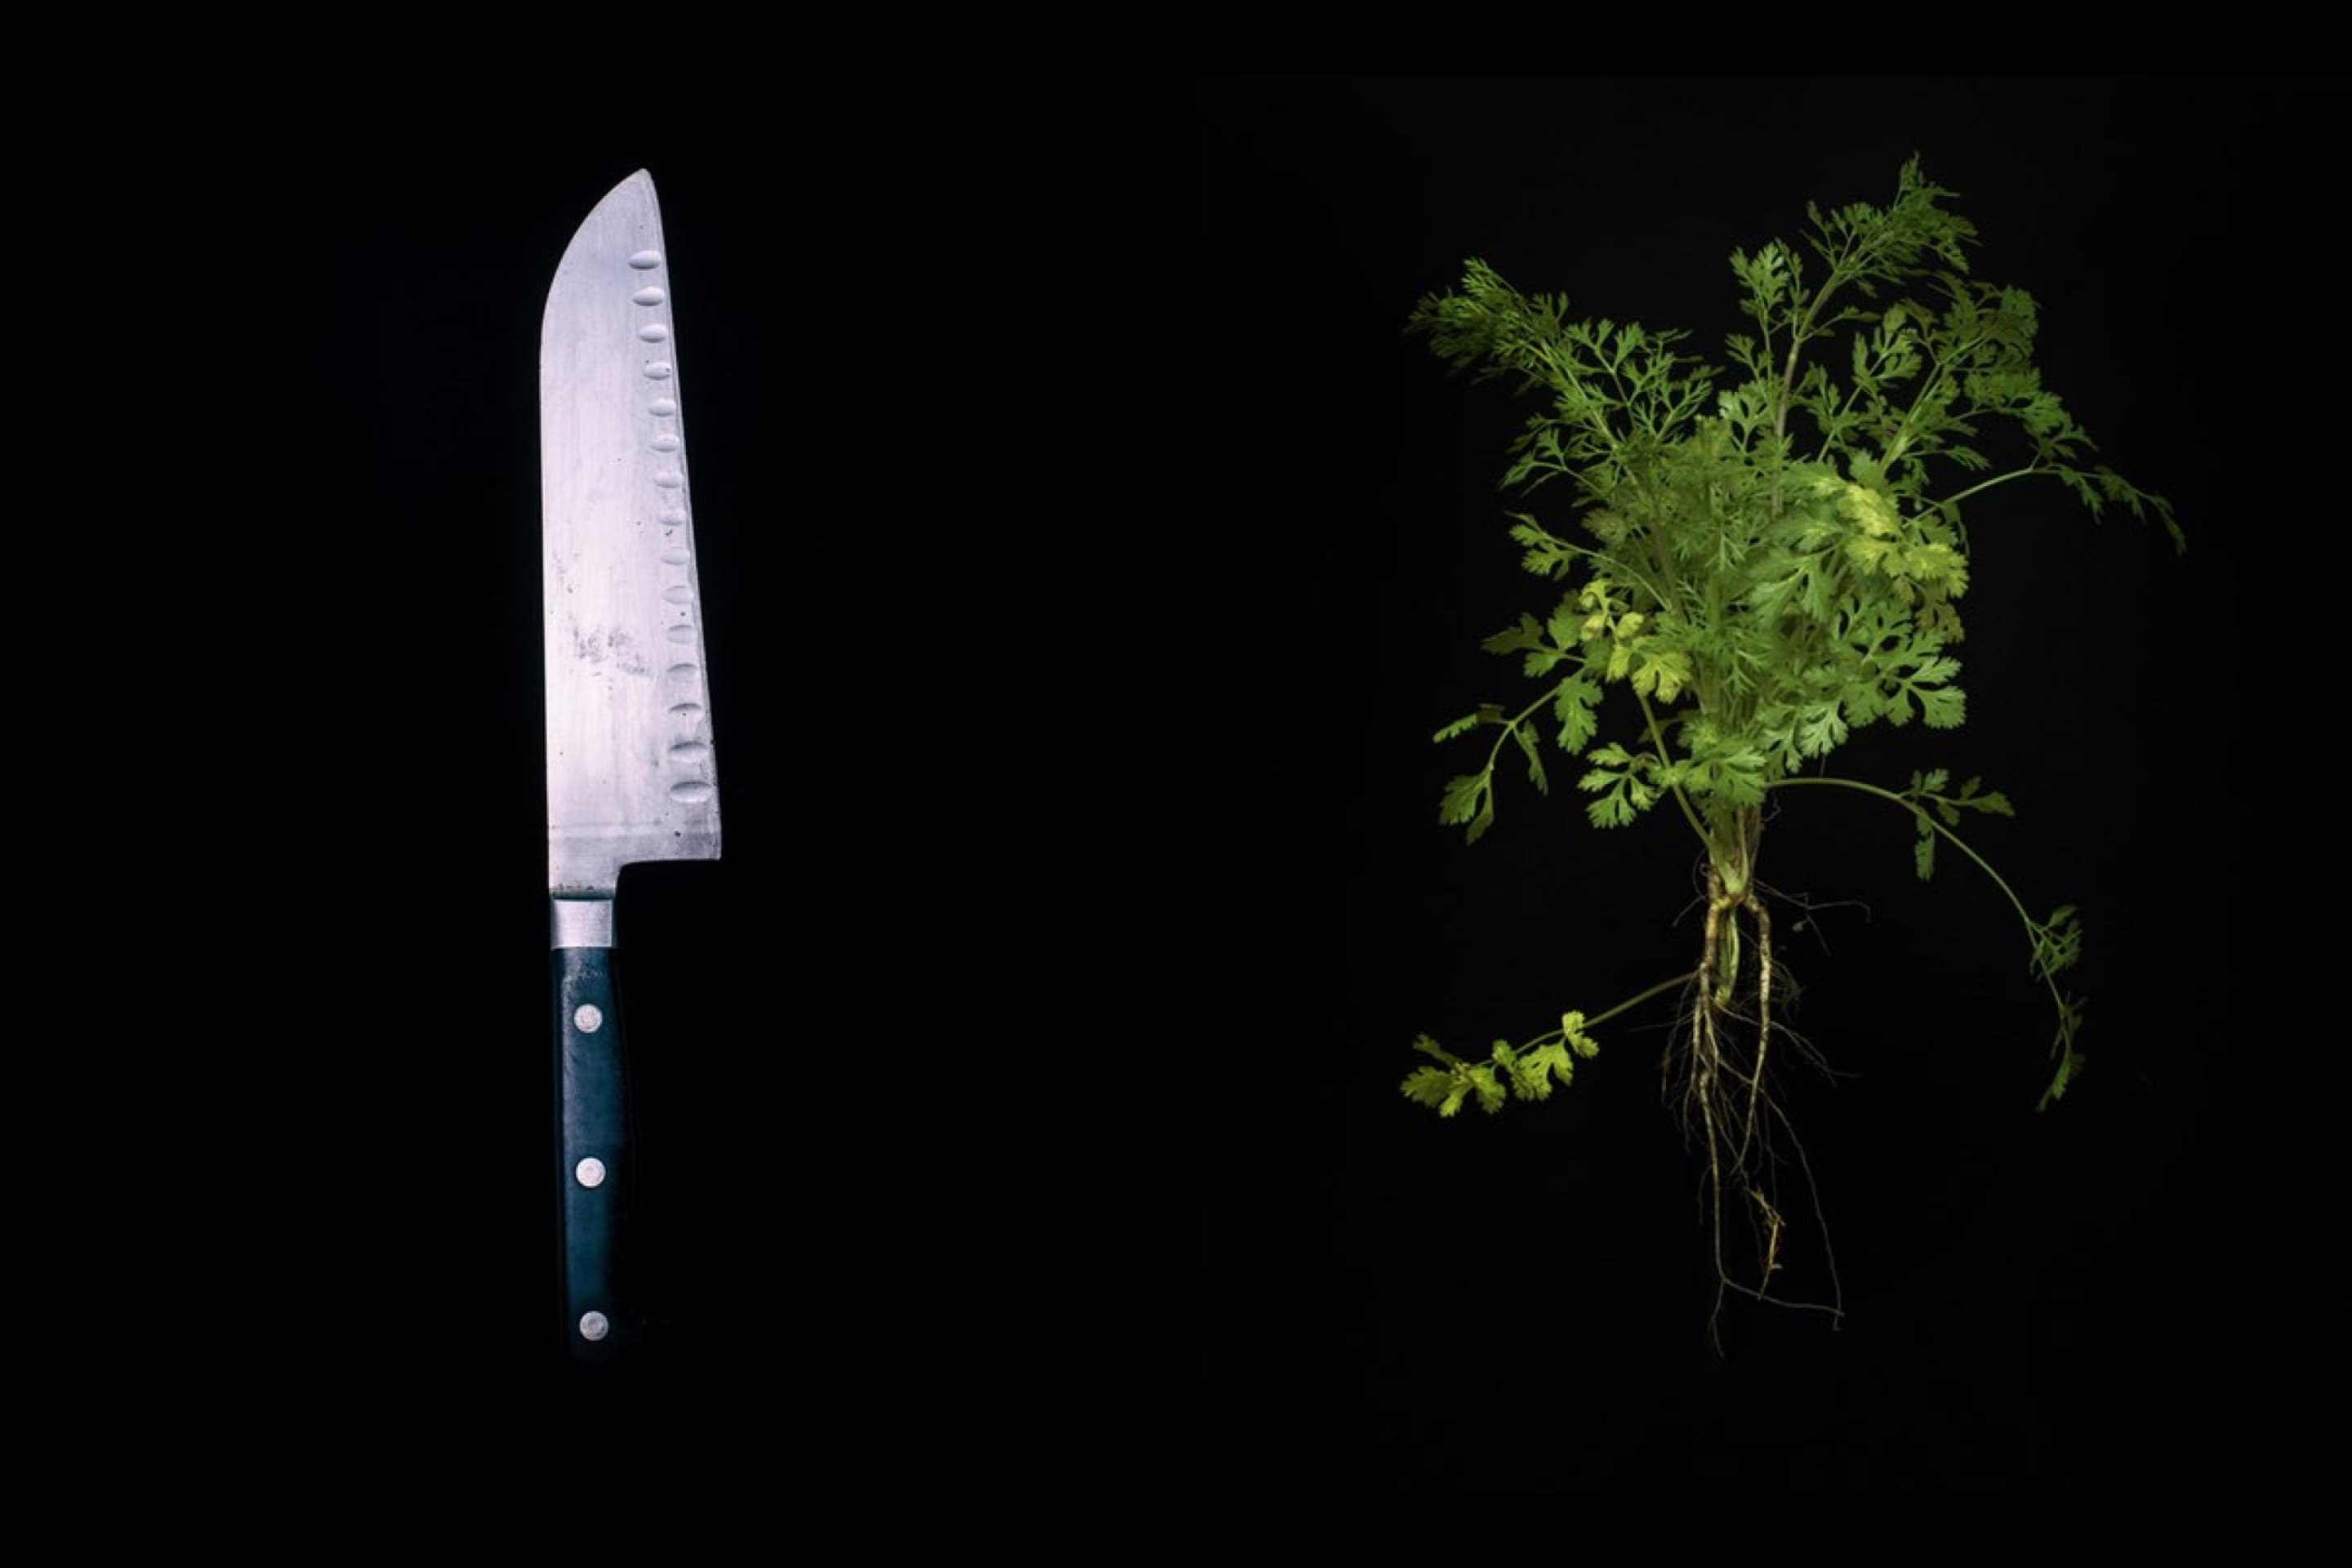 Cooking knife and herbs